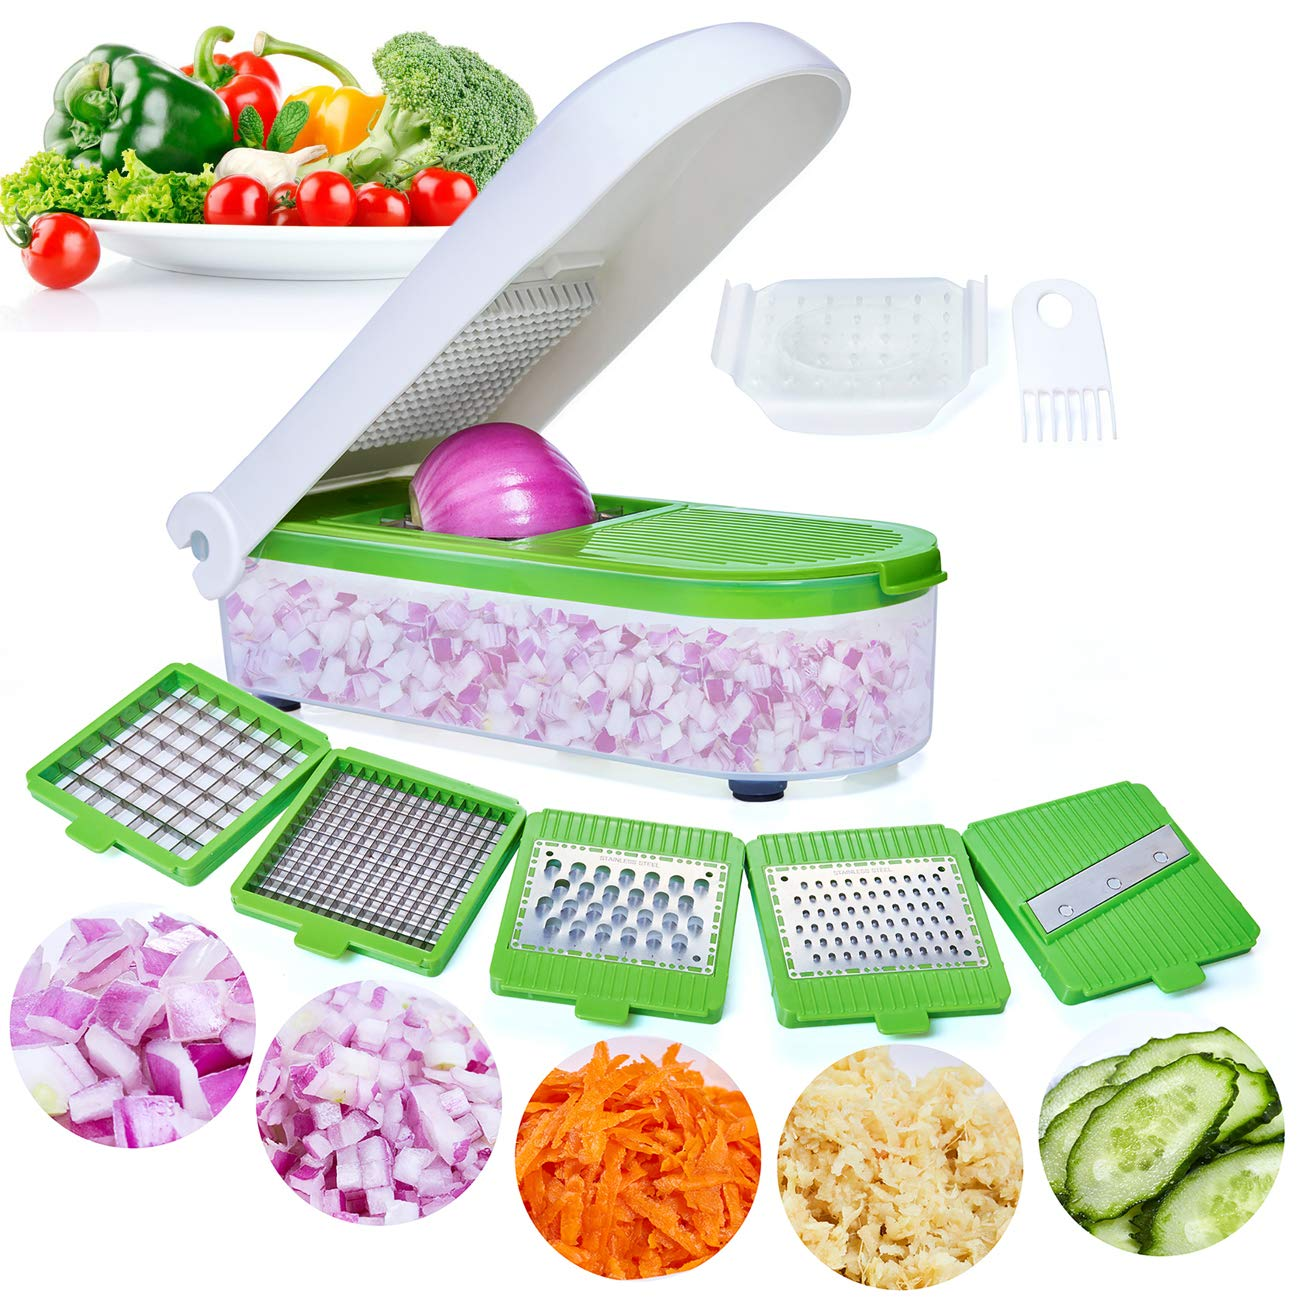 LHS Vegetable Chopper,Pro Onion Chopper Slicer Dicer Cutter - Cheese & Veggie Chopper - Food Chopper Dicer with 5 Blades by LHS